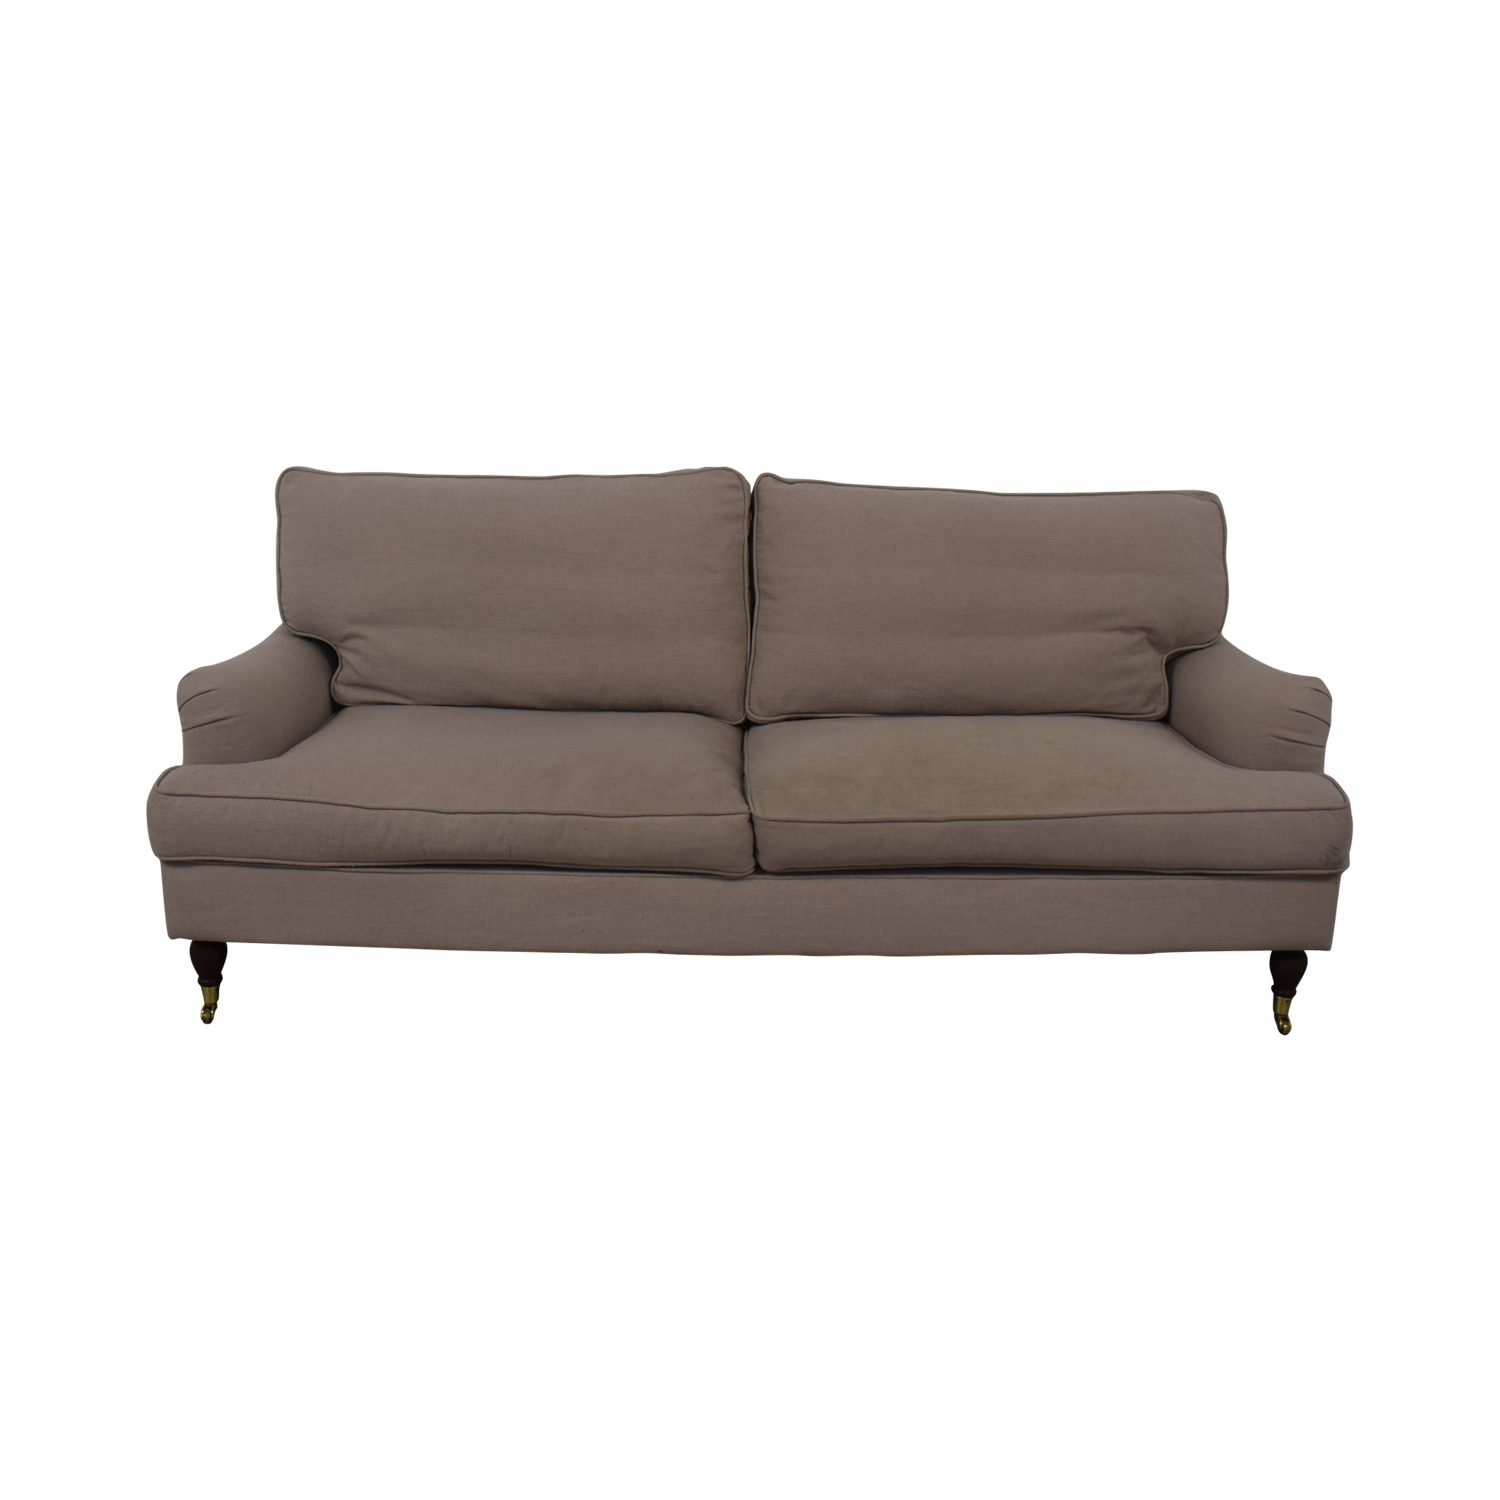 Safavieh Safavieh Roll Arm Sofa